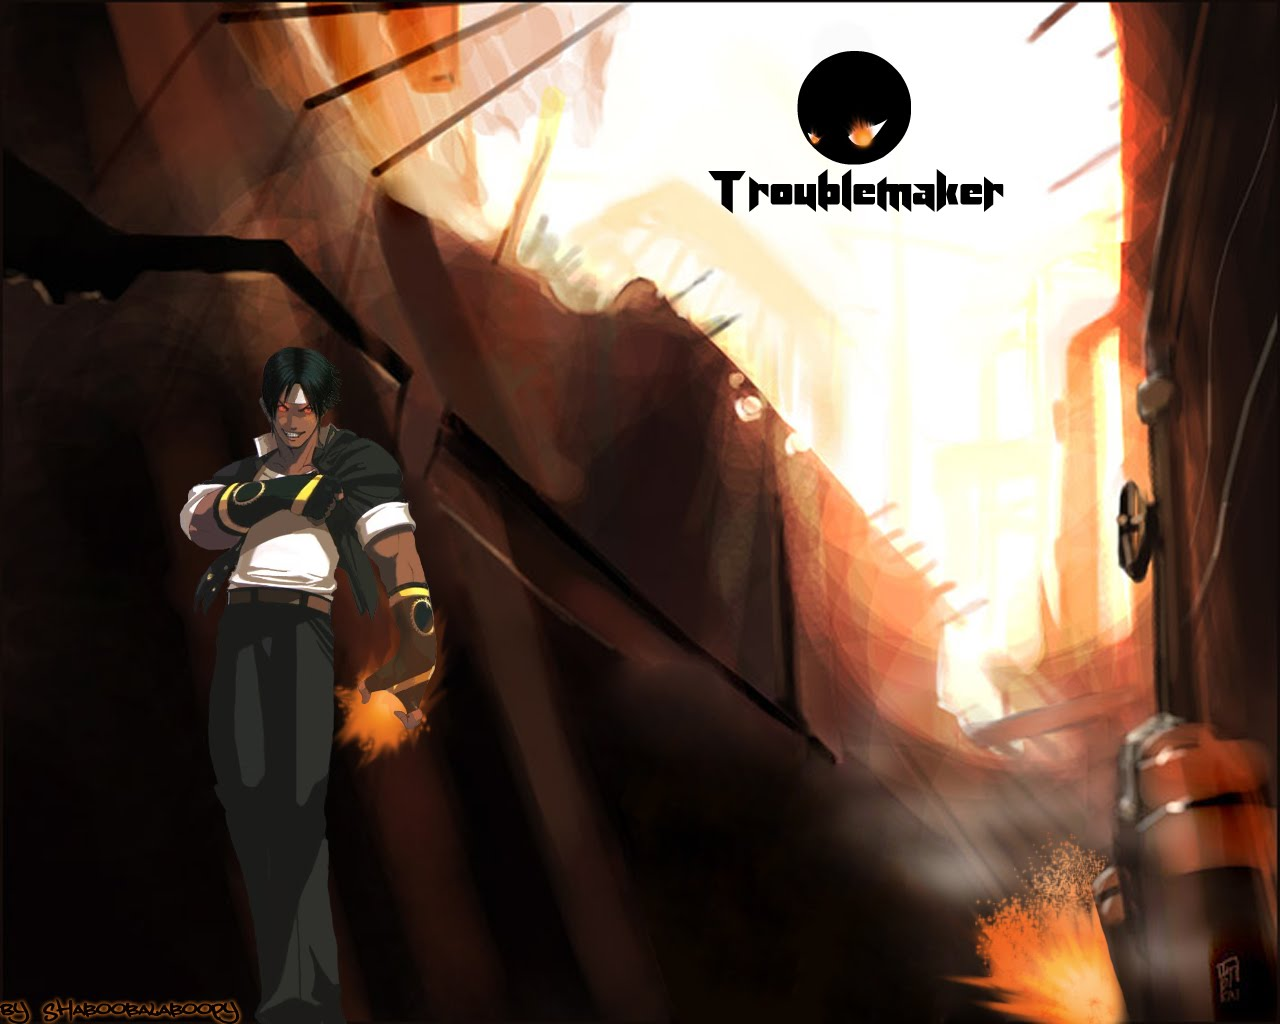 http://2.bp.blogspot.com/_lkV83l6Cxdk/TCuJNO00XWI/AAAAAAAAAJw/v8IKZsu9AMU/s1600/King-Of-Fighters-Wallpapers-019.jpg